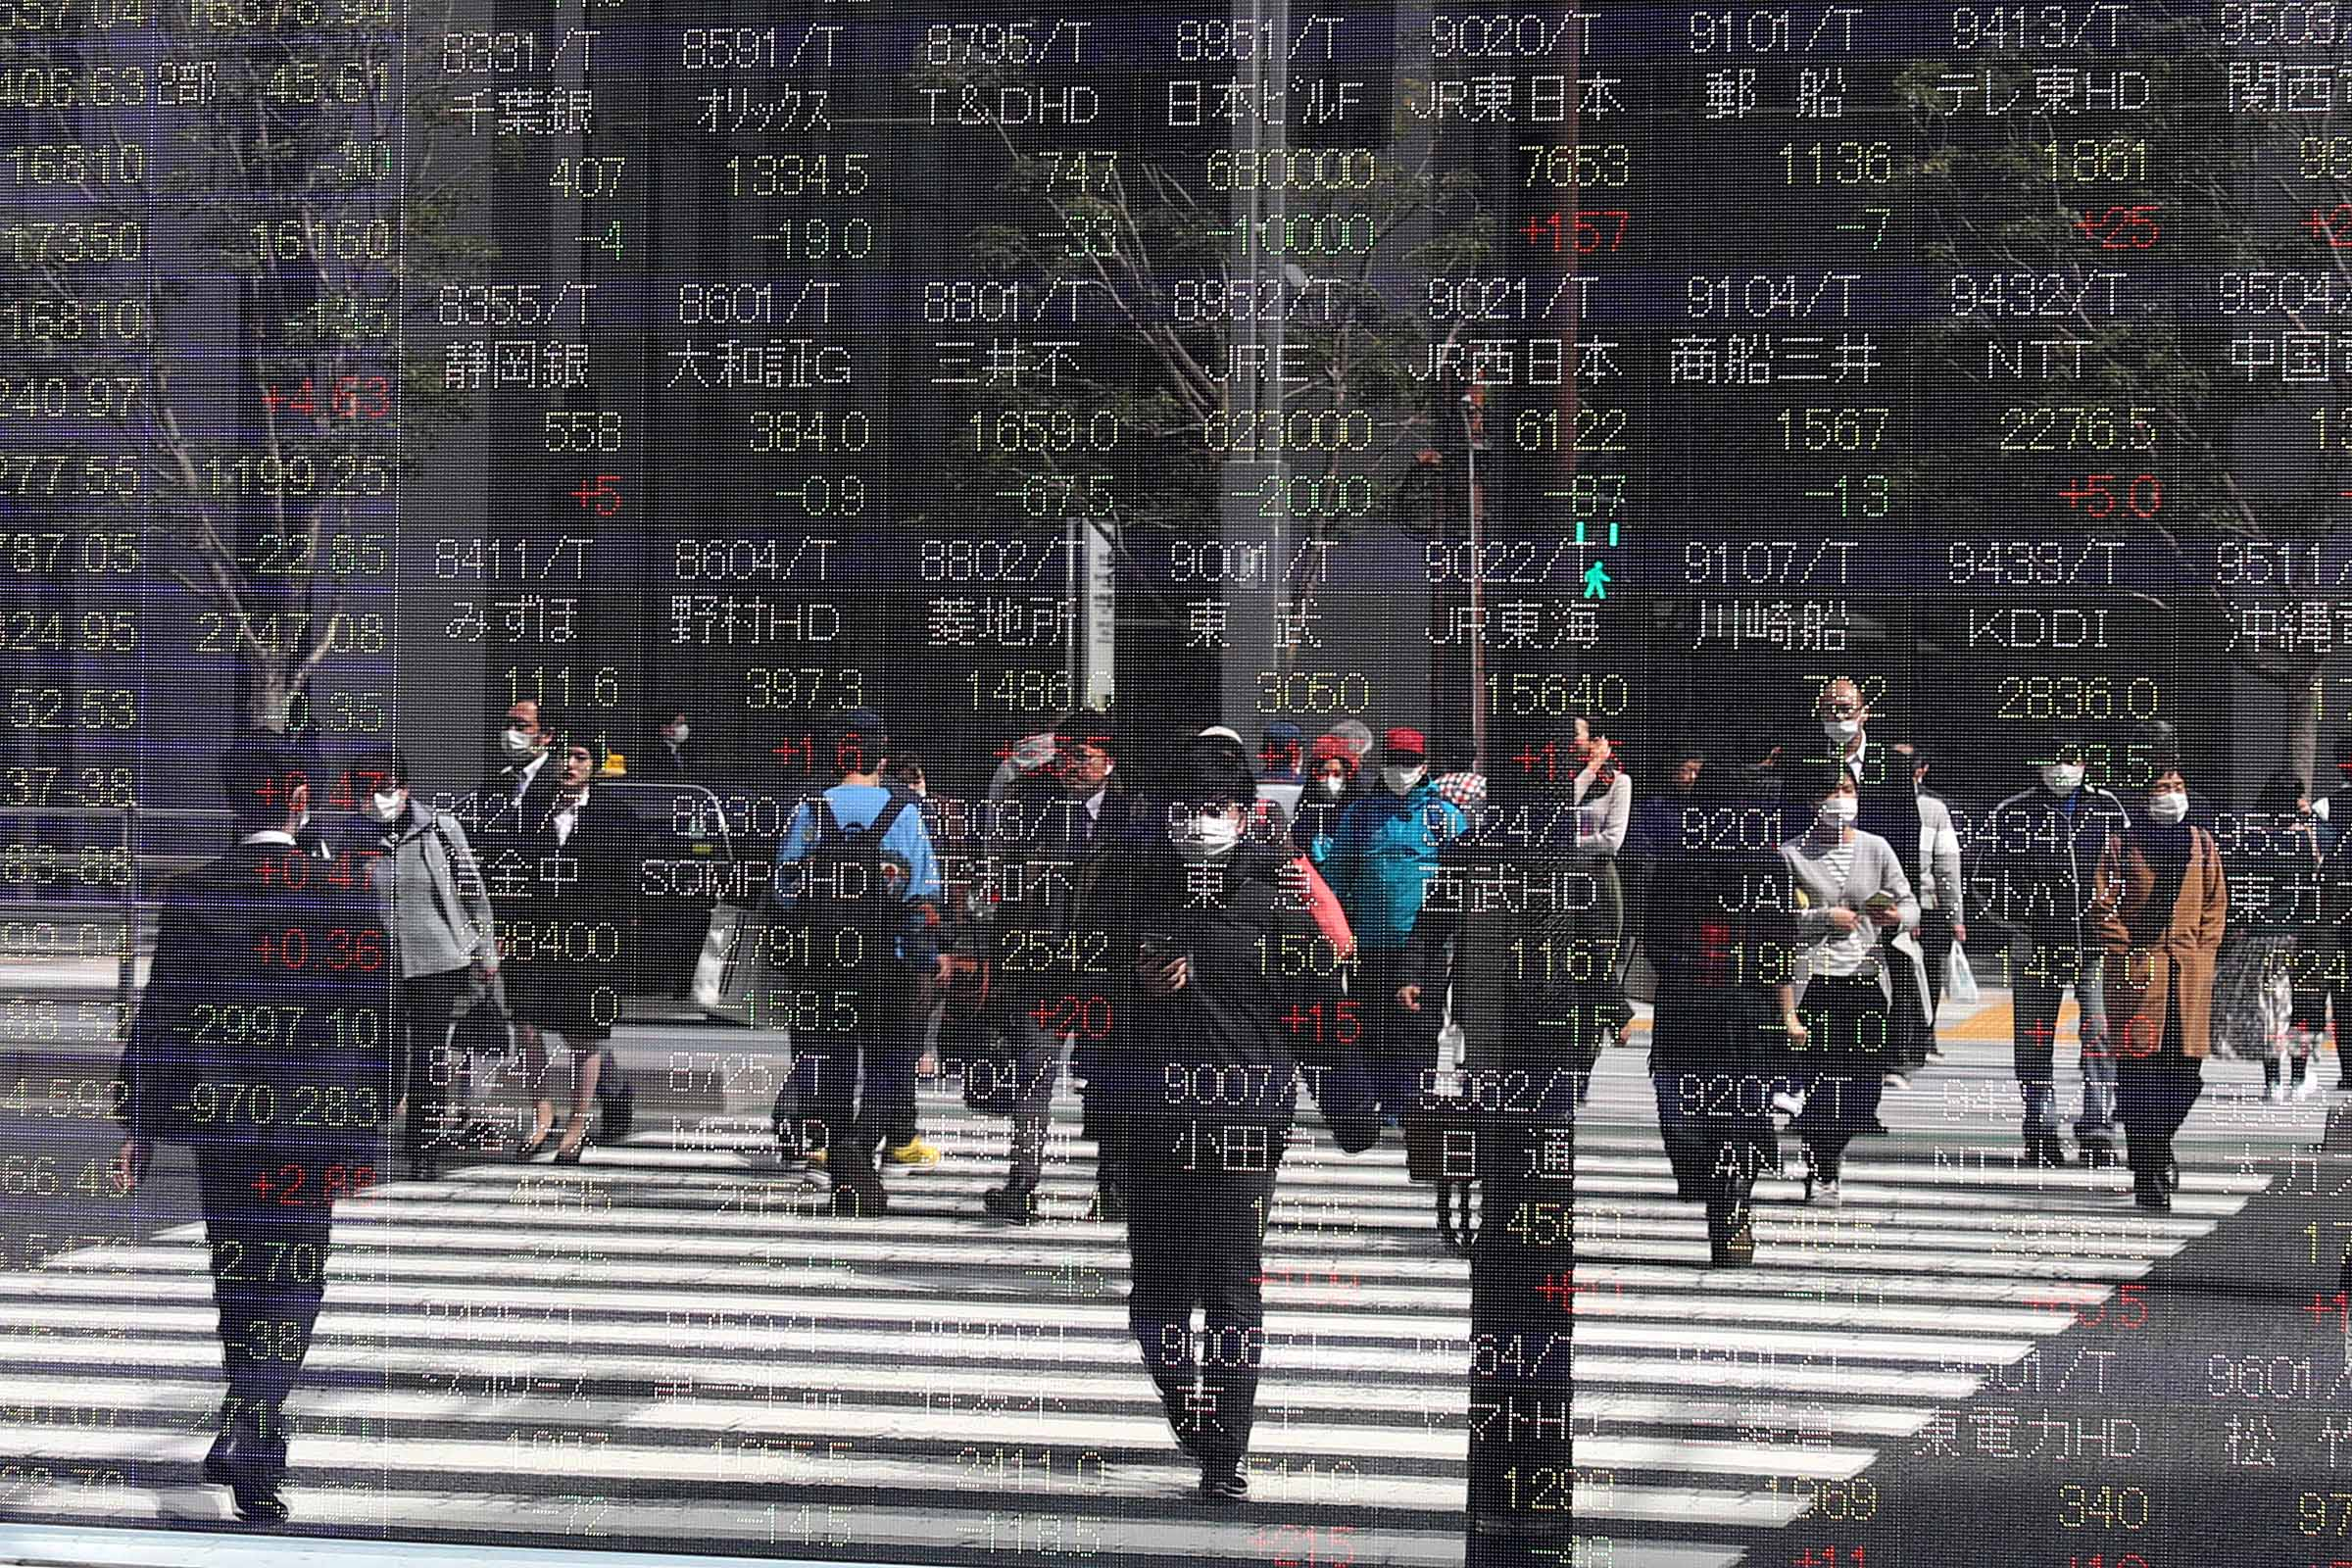 Electronic stock market displays reflect pedestrians in Tokyo, Japan, on March 16.